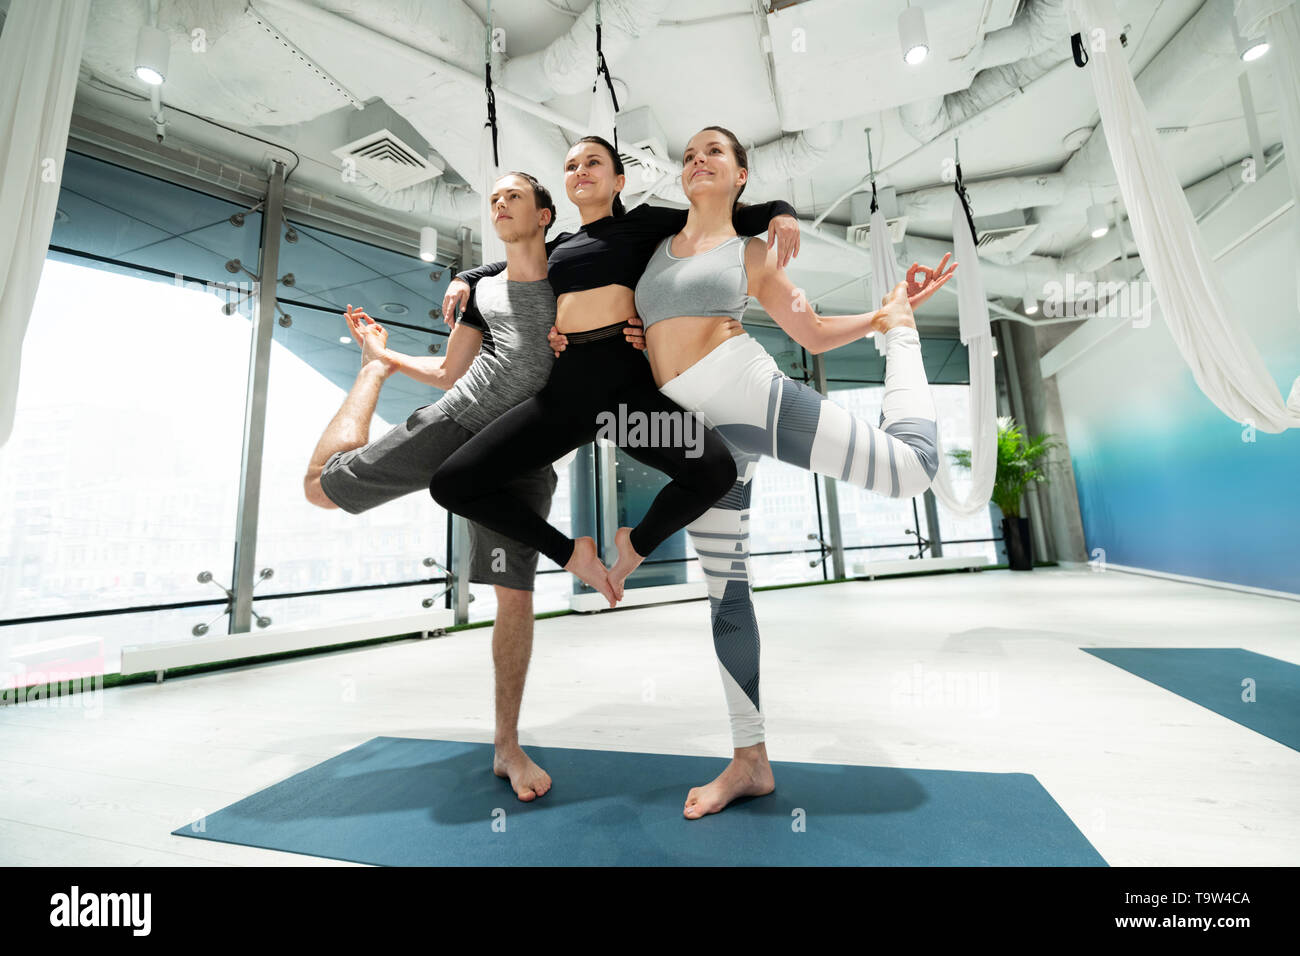 Women and one man doing nice yoga poses after practicing - Stock Image